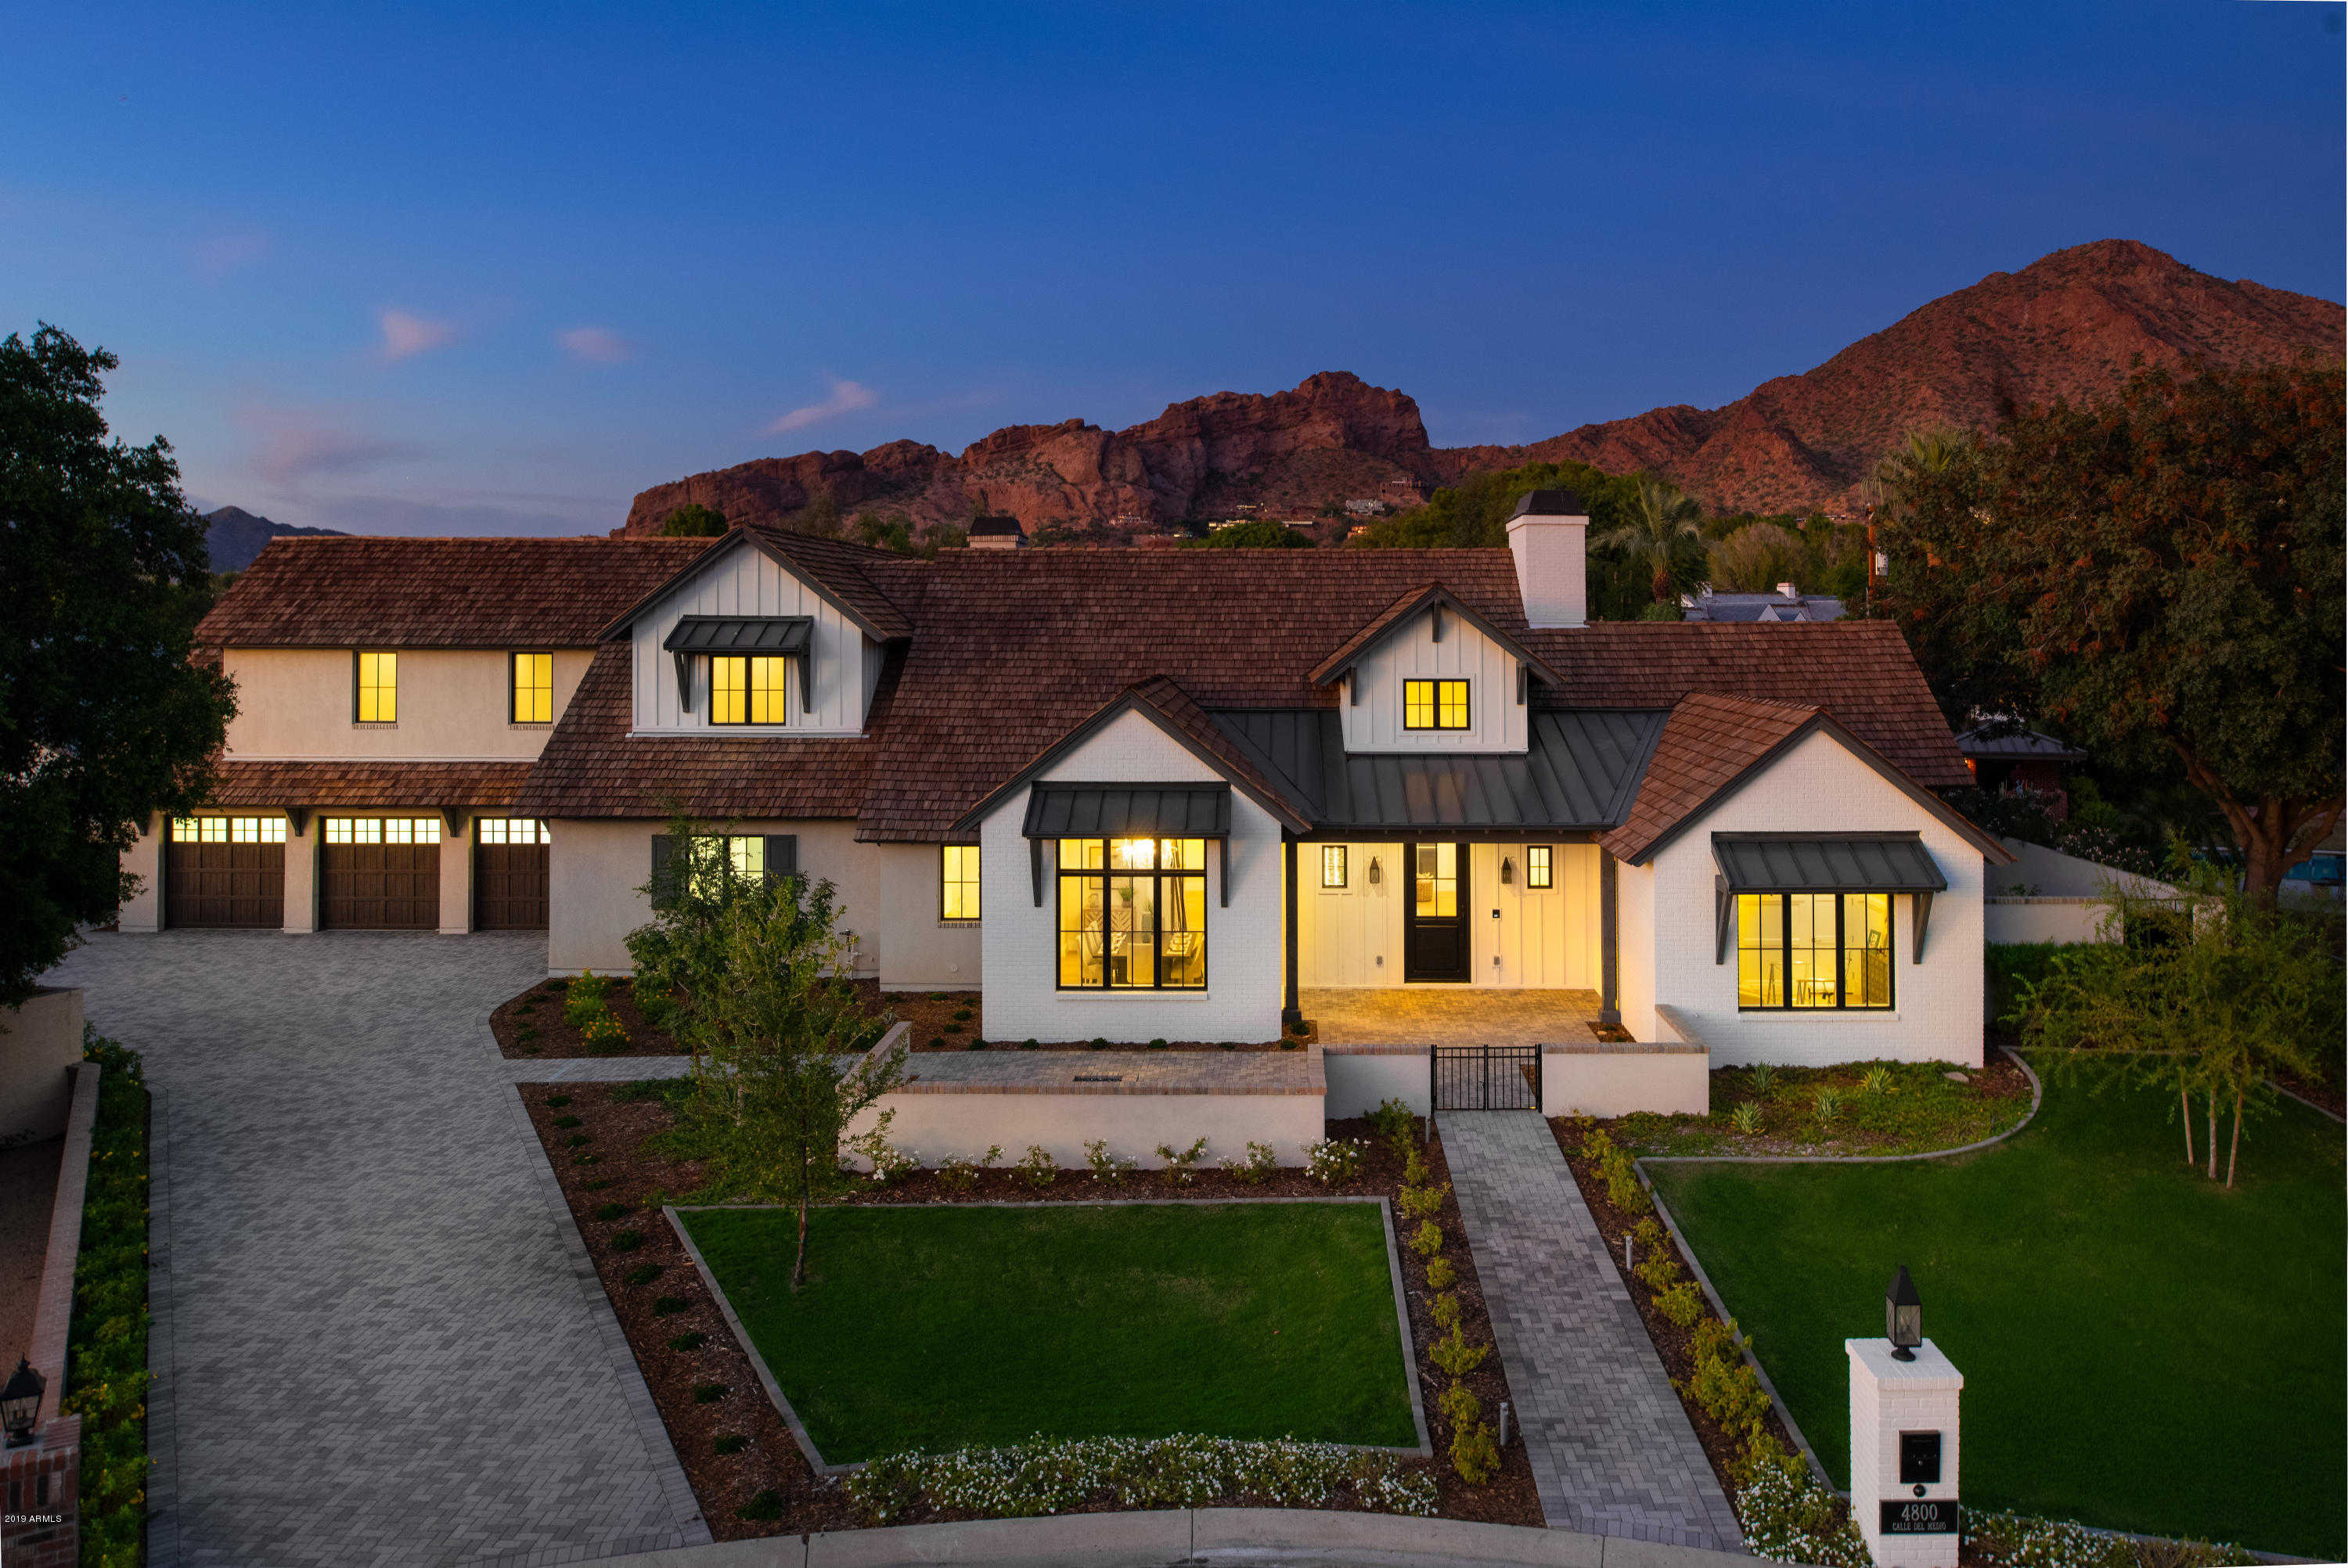 $3,675,000 - 5Br/6Ba - Home for Sale in Arcadia, Phoenix